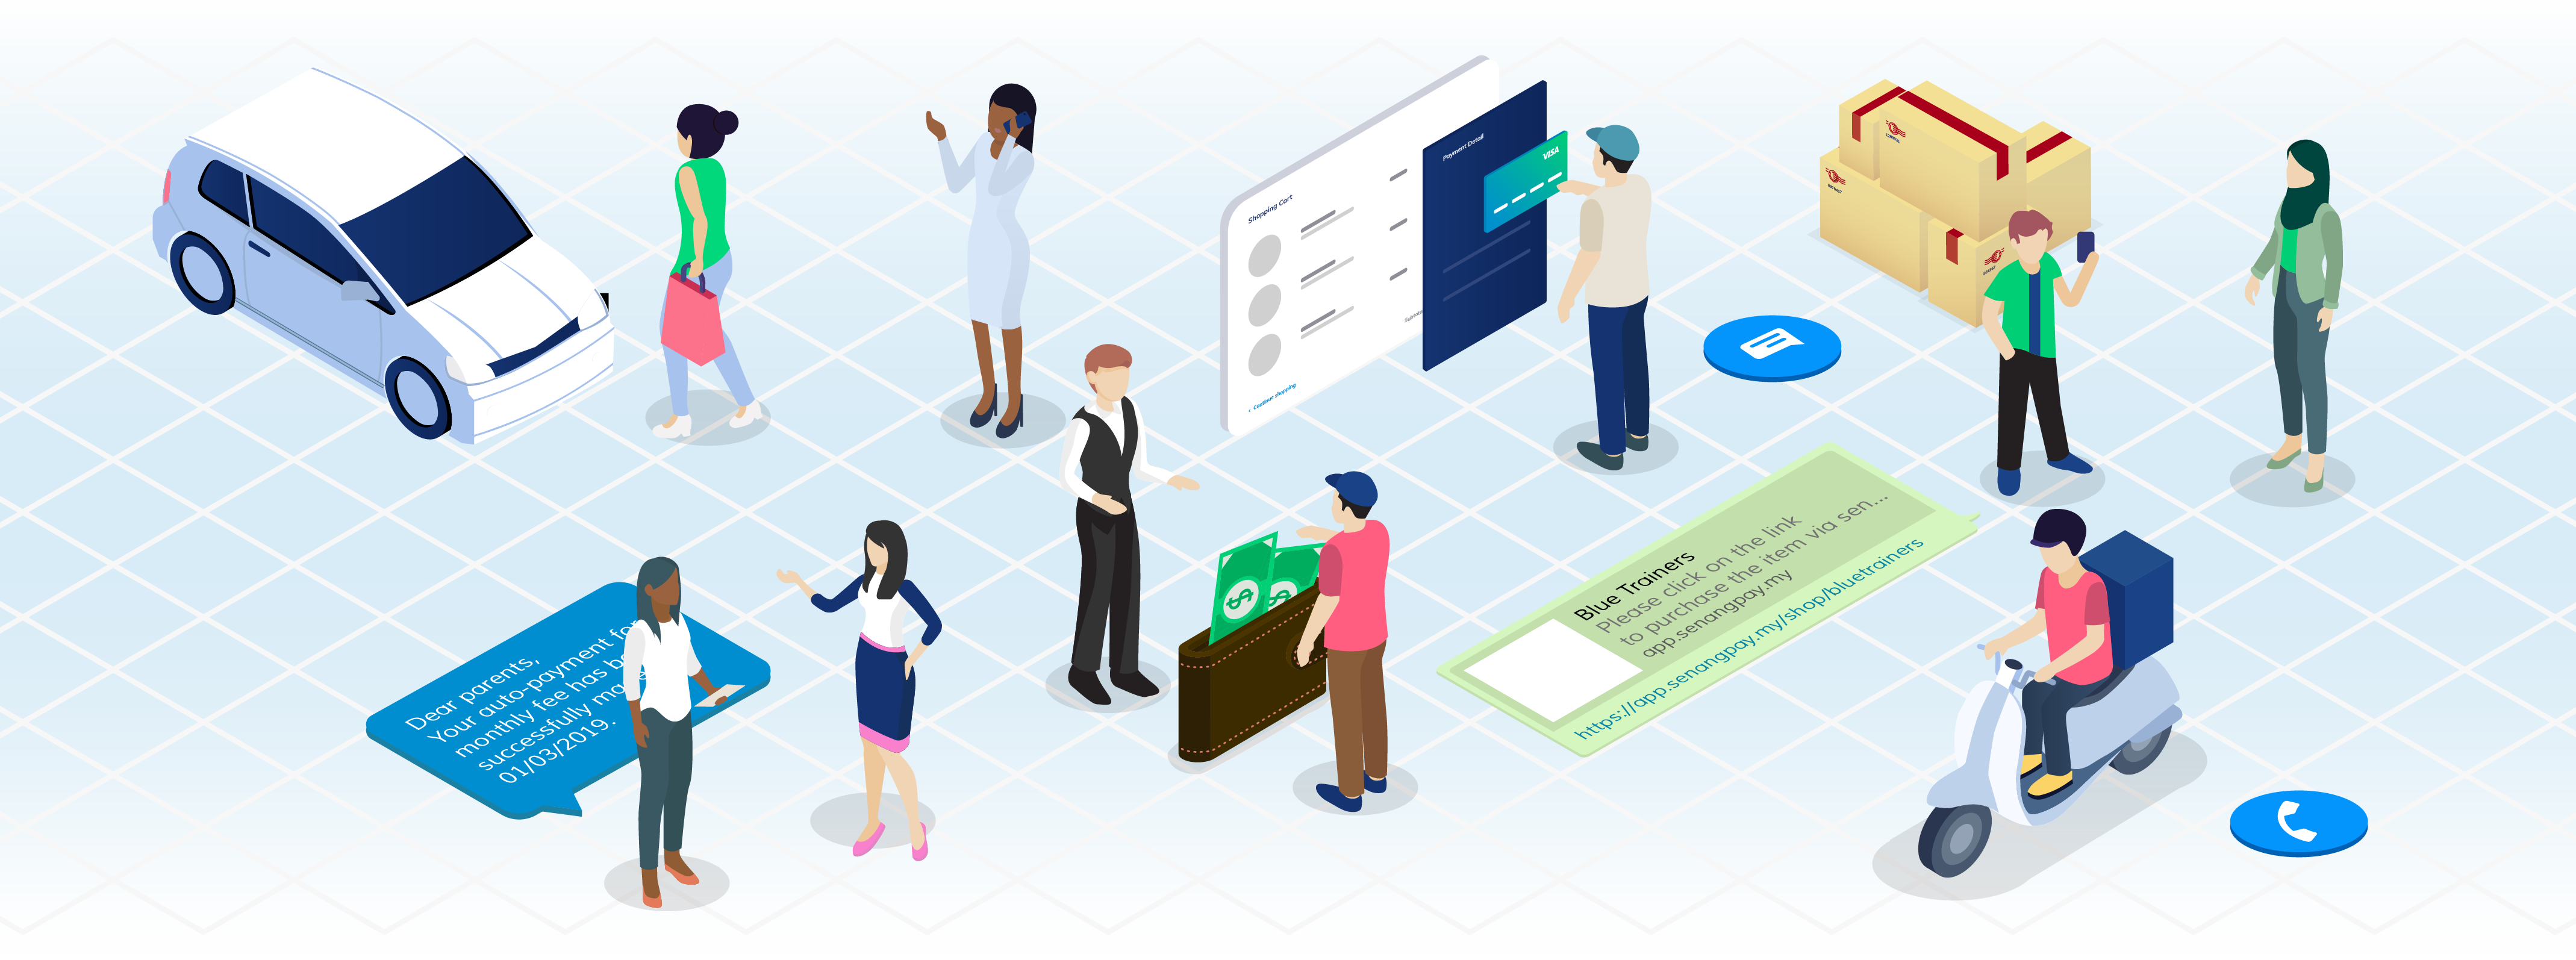 Isometric image: Bunch of people stand and talking